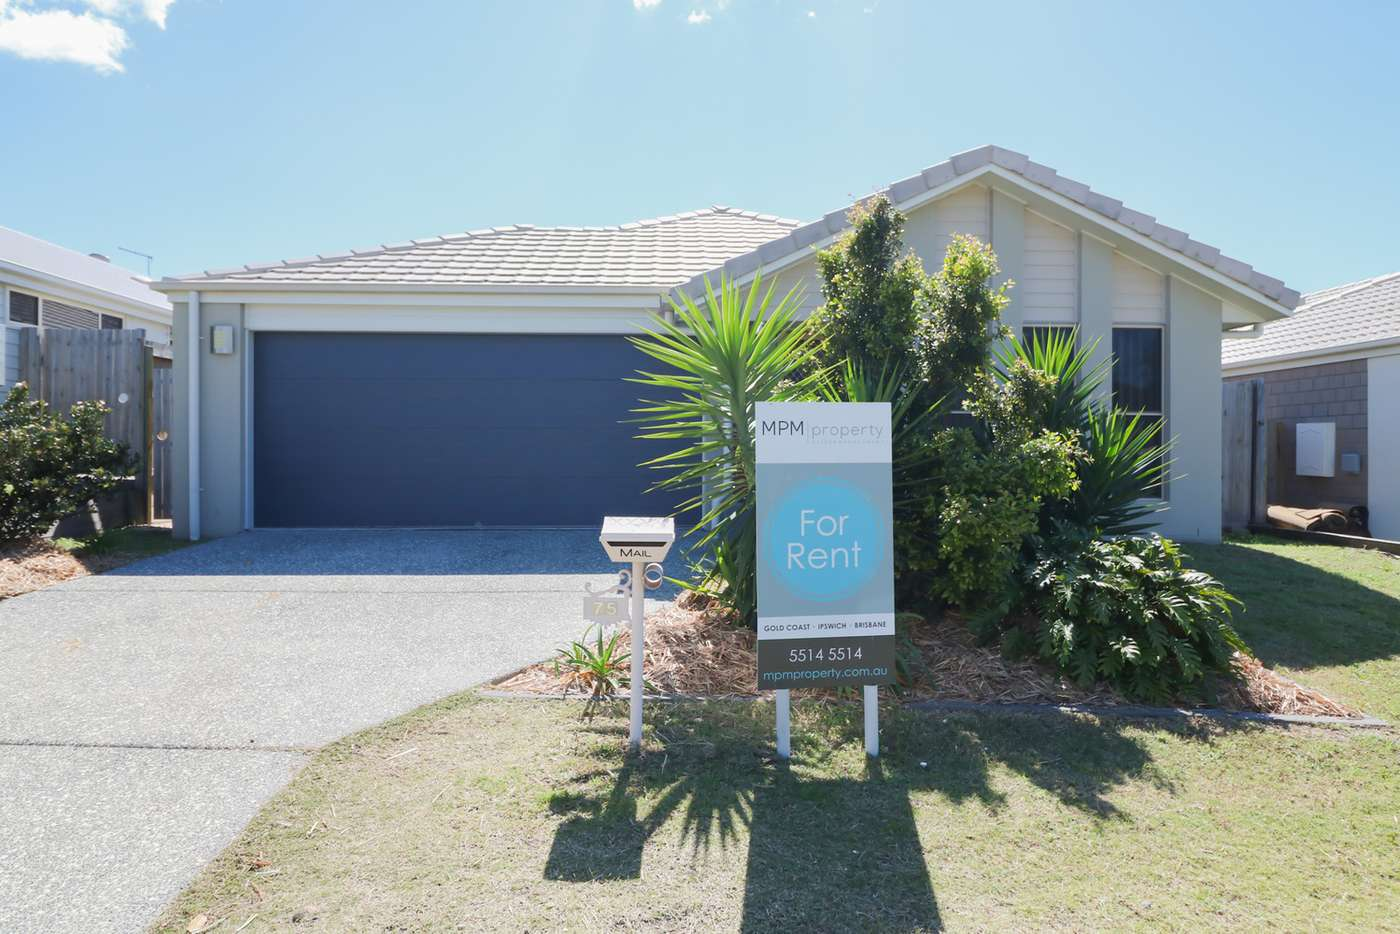 Main view of Homely house listing, 75 William Boulevard, Pimpama QLD 4209